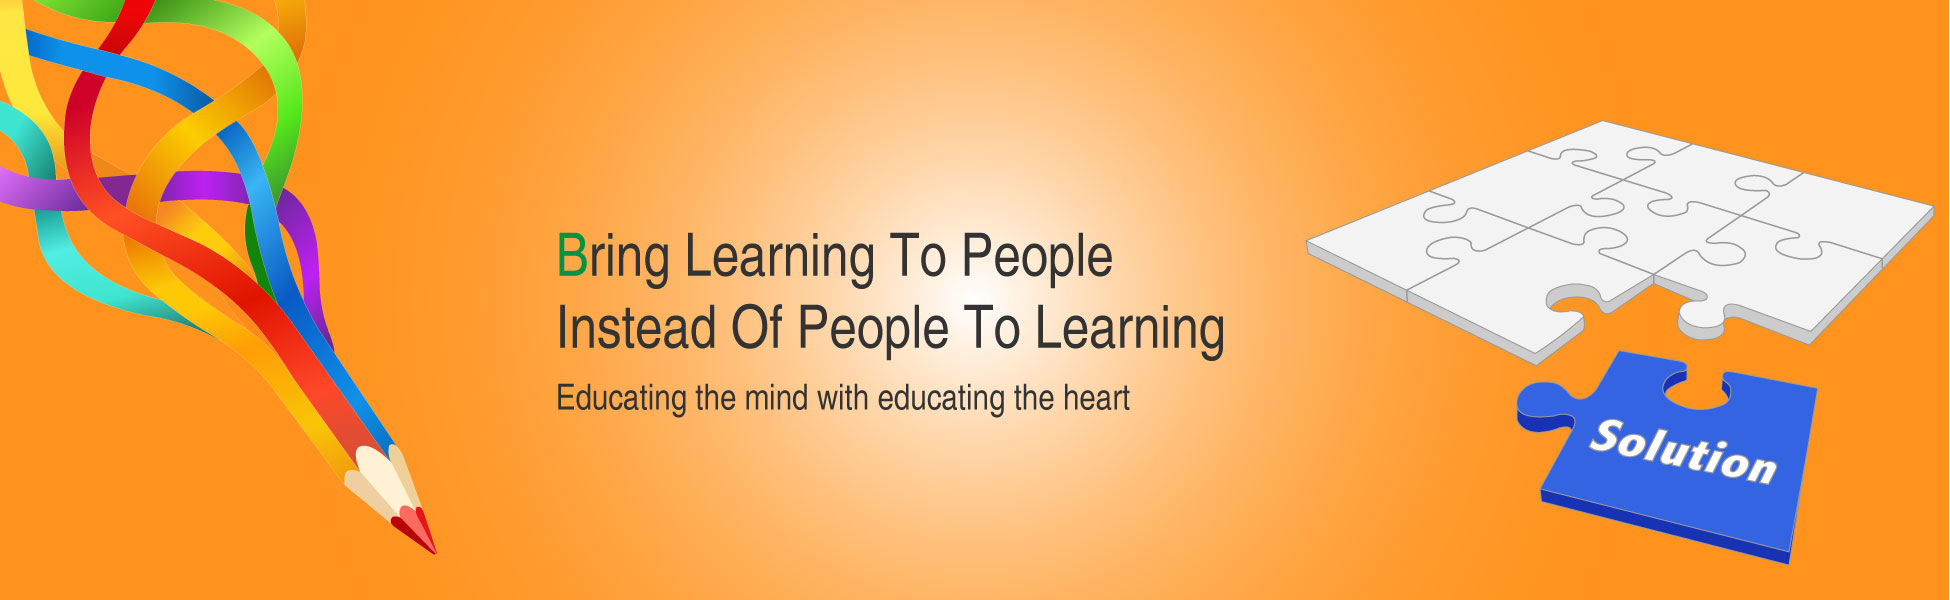 Bring Learning to People